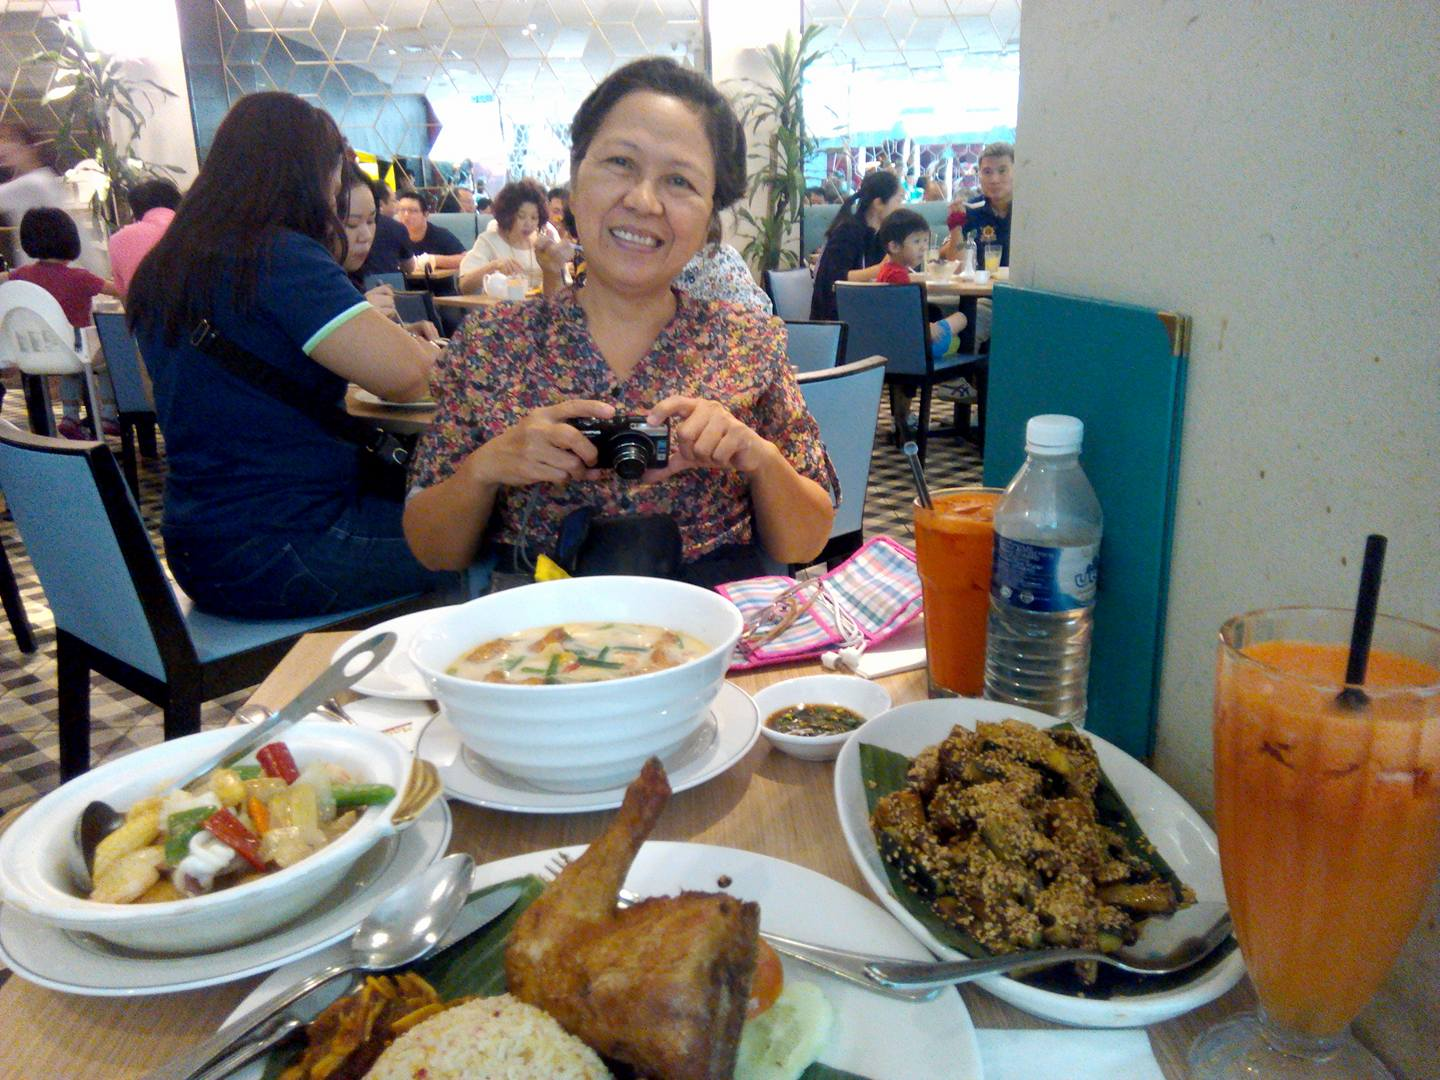 Chinese Malaysian Lunch treat at Madam Kwan'sby my friend Rizza who works in Malaysia